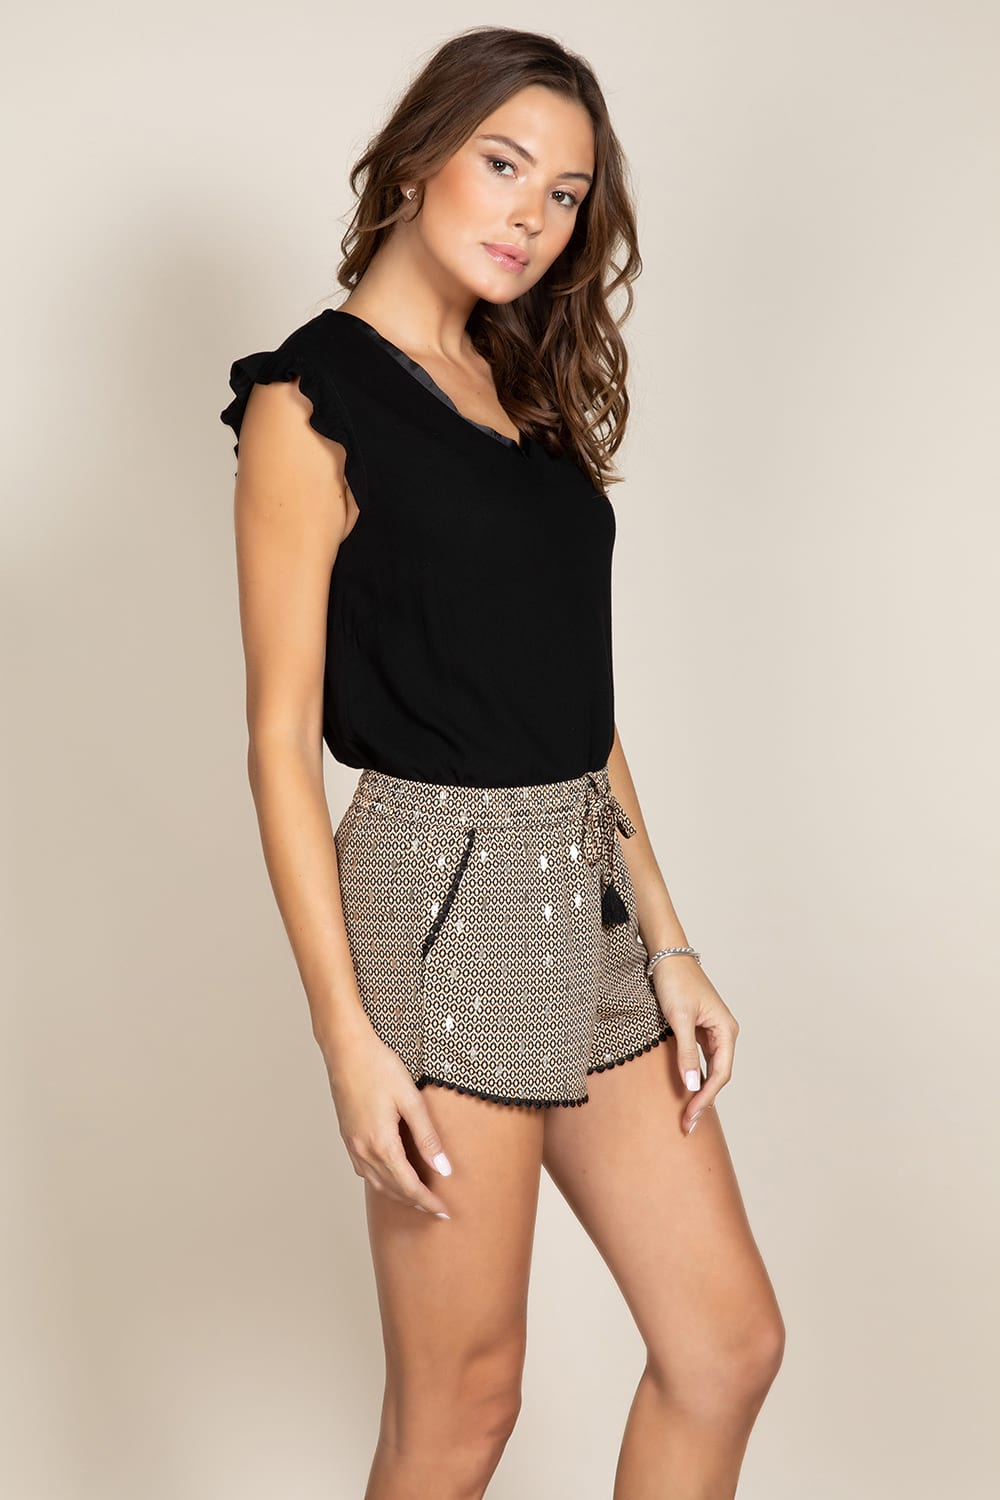 Blouse MILY - Couleur - Black, Taille - XS